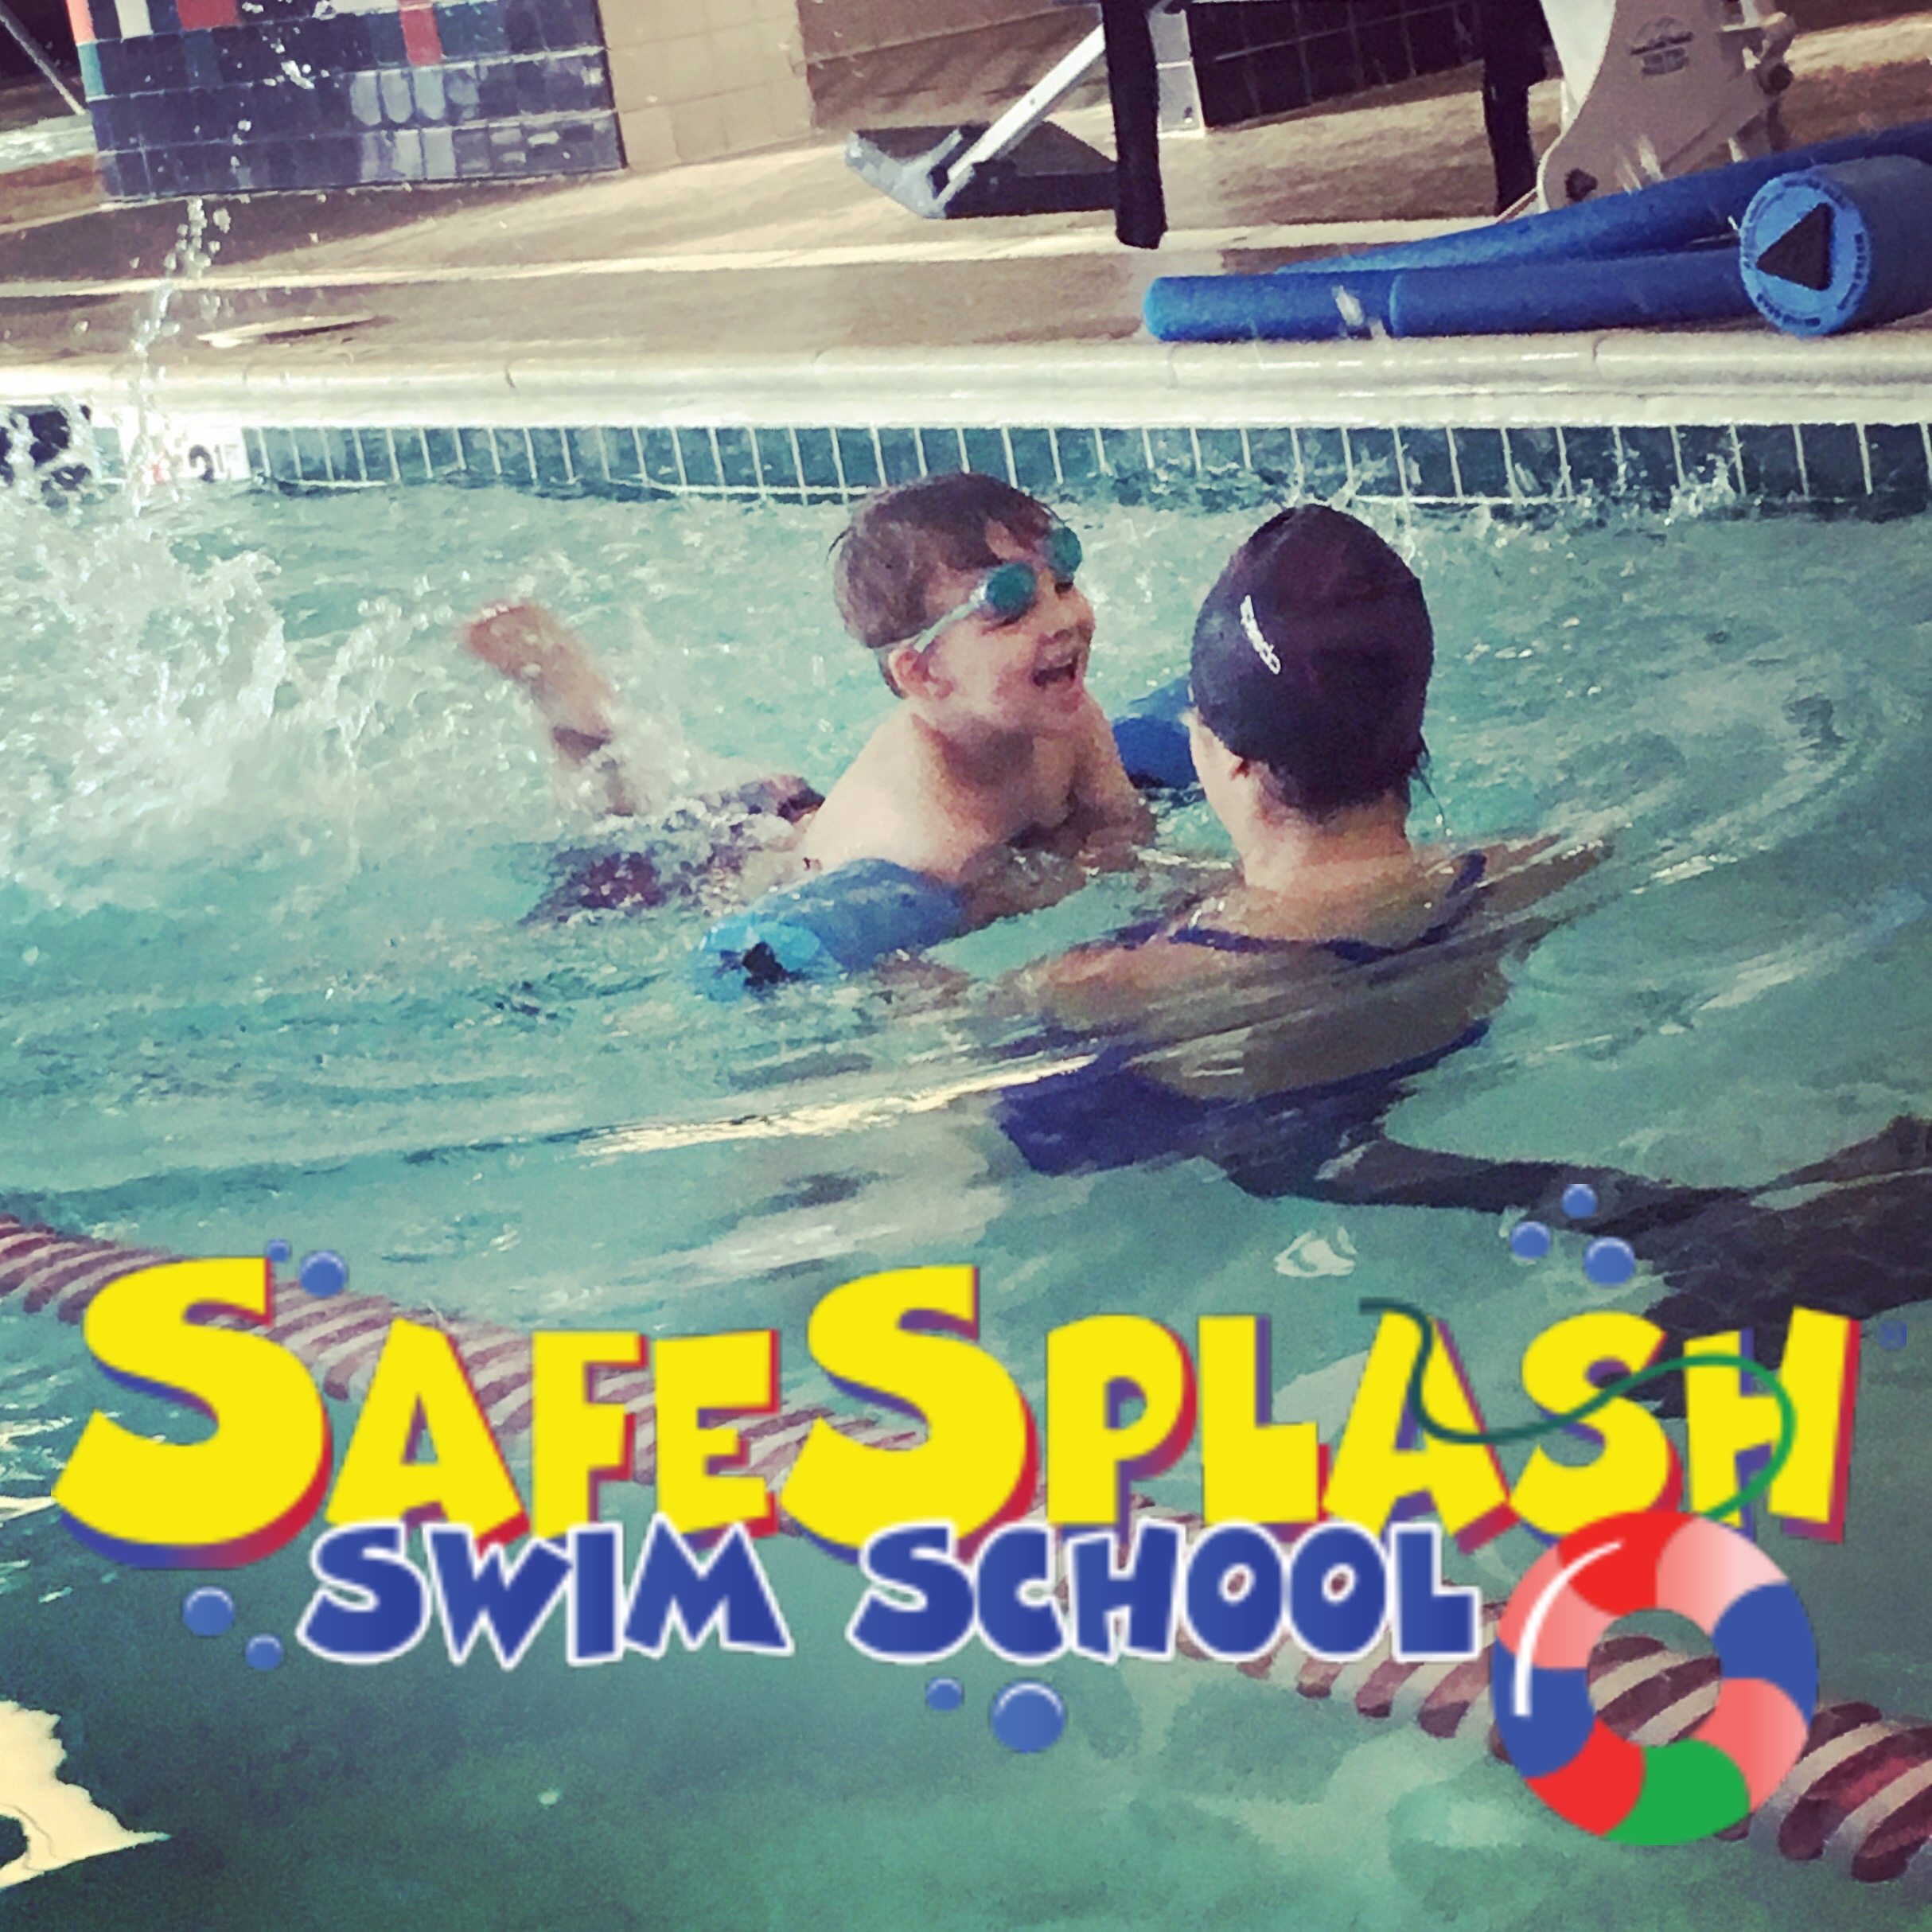 Learn To Swim with SafeSplash Swim School!